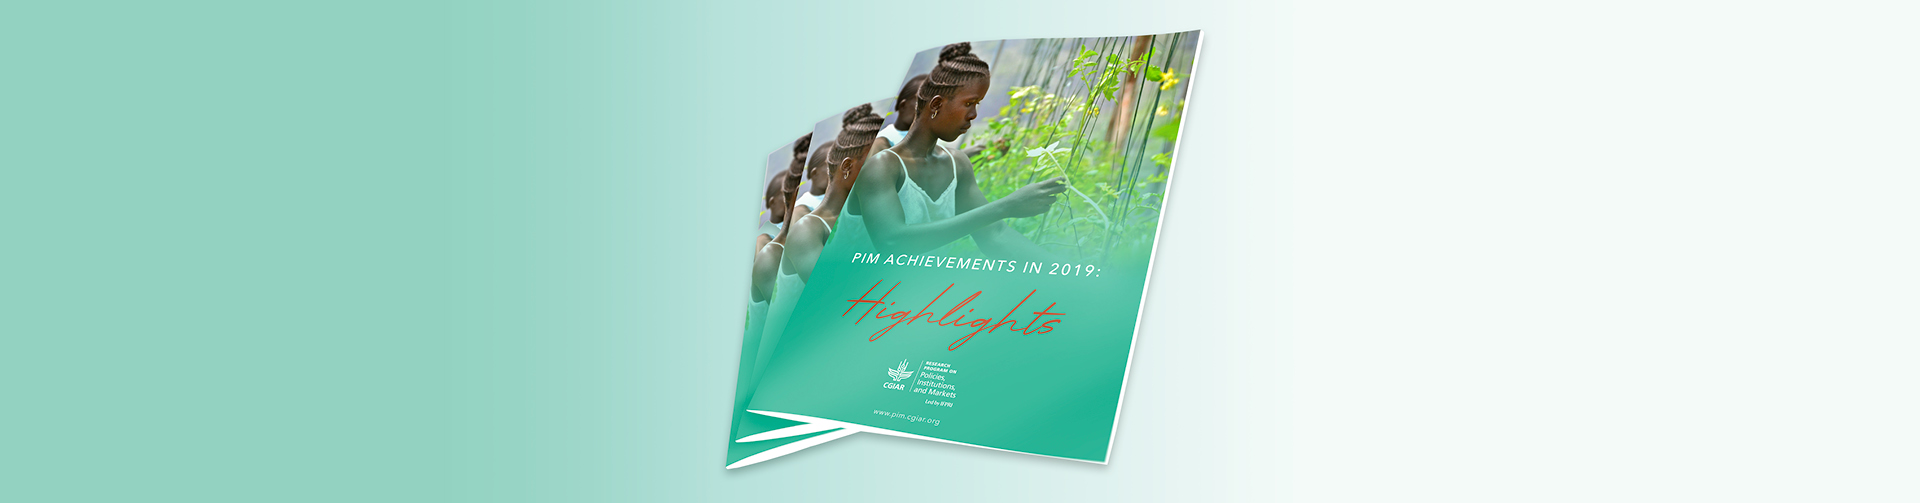 PIM Achievement in 2019: Highlights